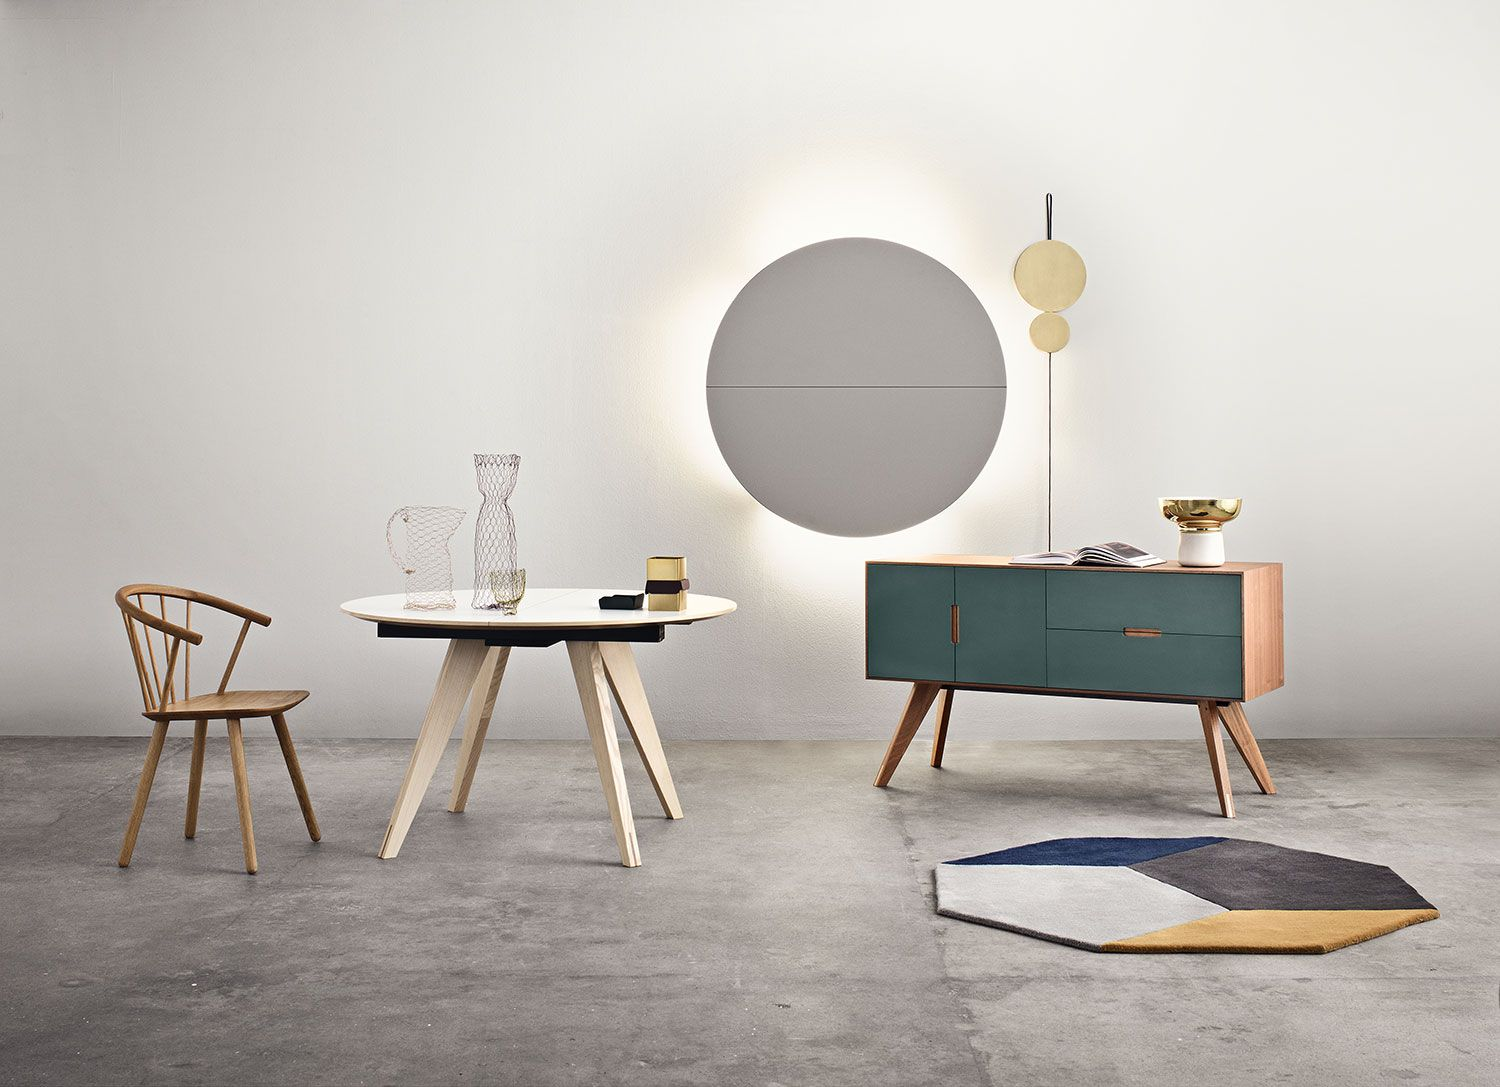 The Sleek low dining chair together with the Mood series Mood